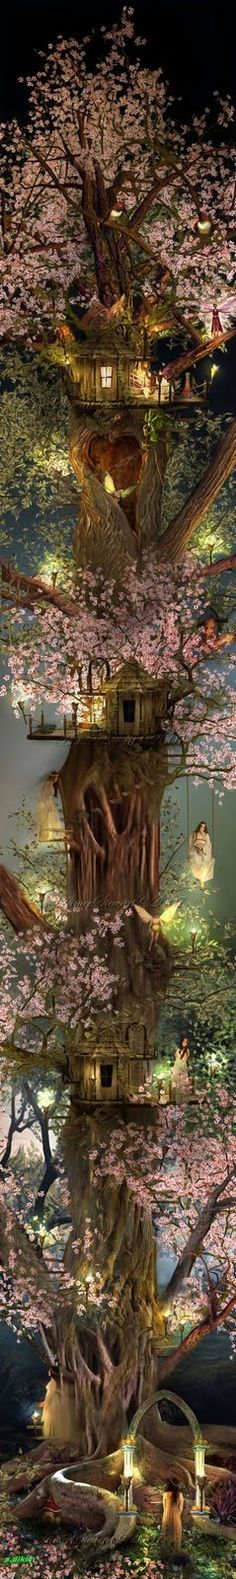 I do believe in Fairies! I do! I do! I do believe in this Fairy tree house!  (I wish it was real!)